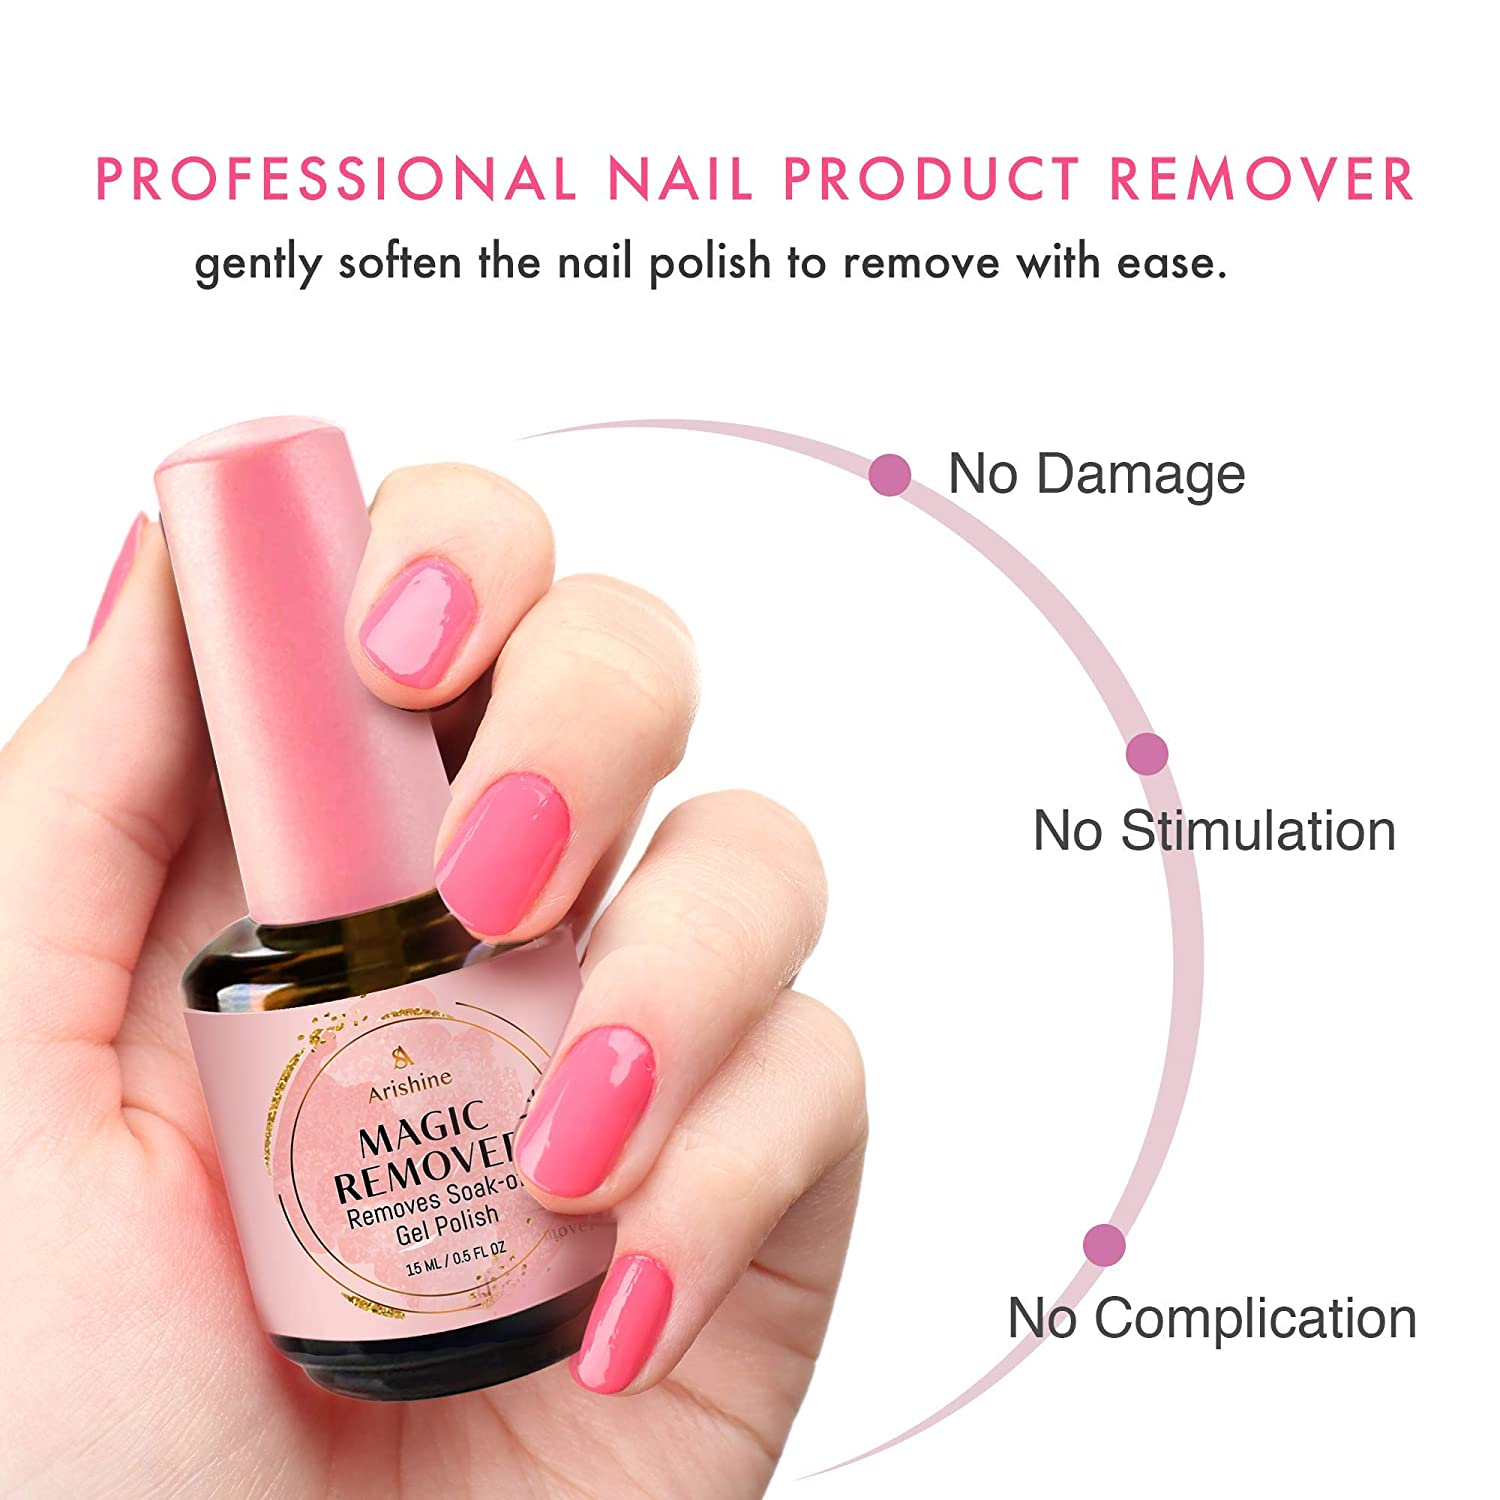 Arishine Magic Gel Nail Polish Remover - Remove Gel Nail Polish Within 2-3 Minutes - No Need For Foil, Soaking Or Wrapping, 0.5 Fl Oz